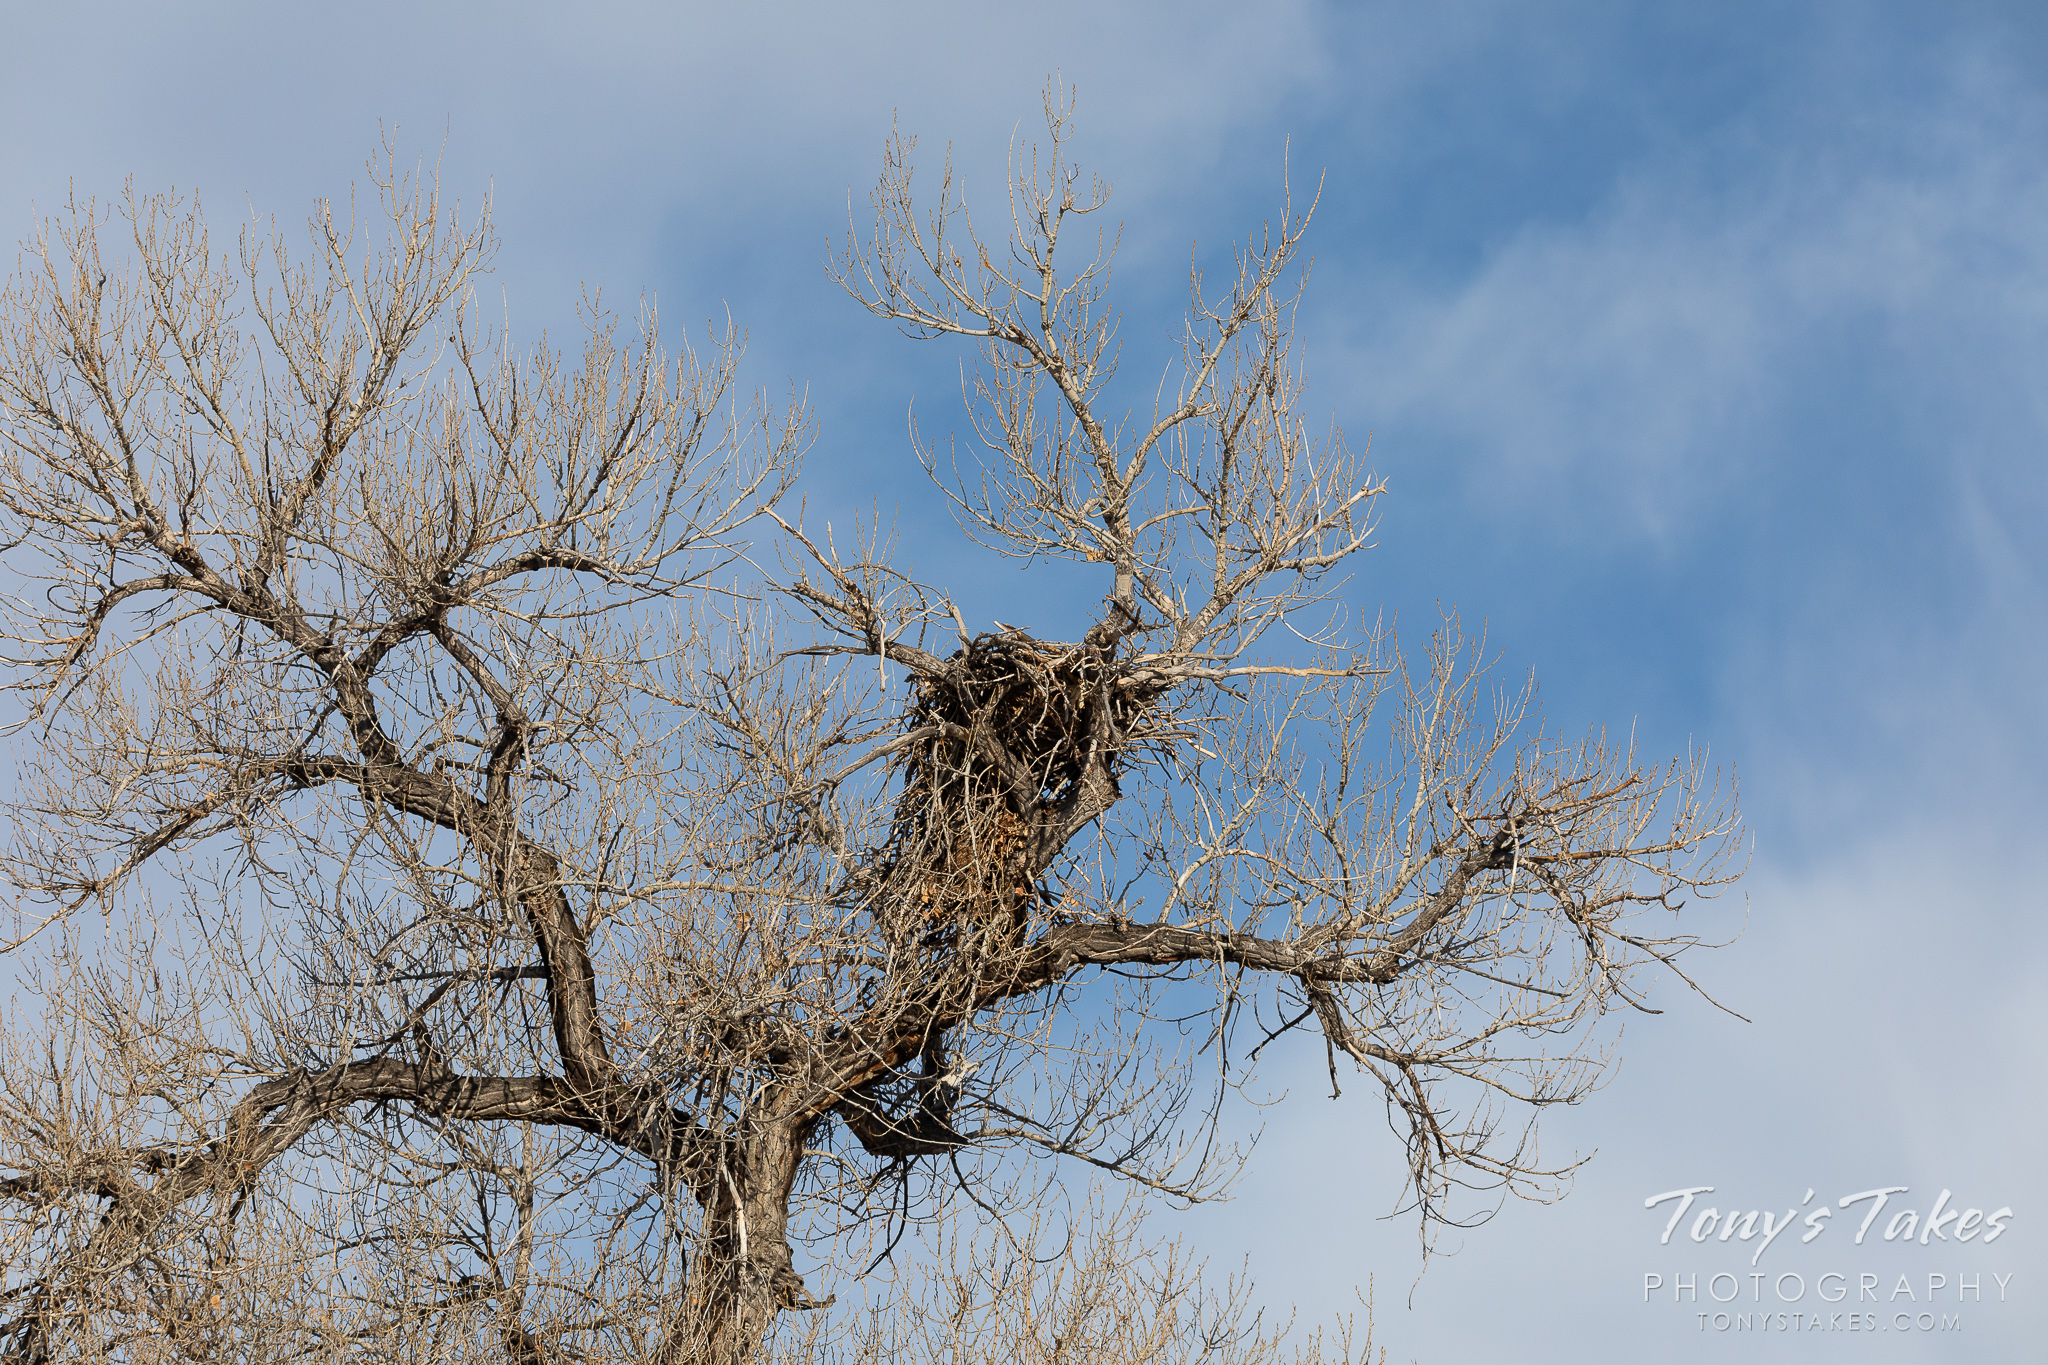 Not what I wanted to see today – an empty nest